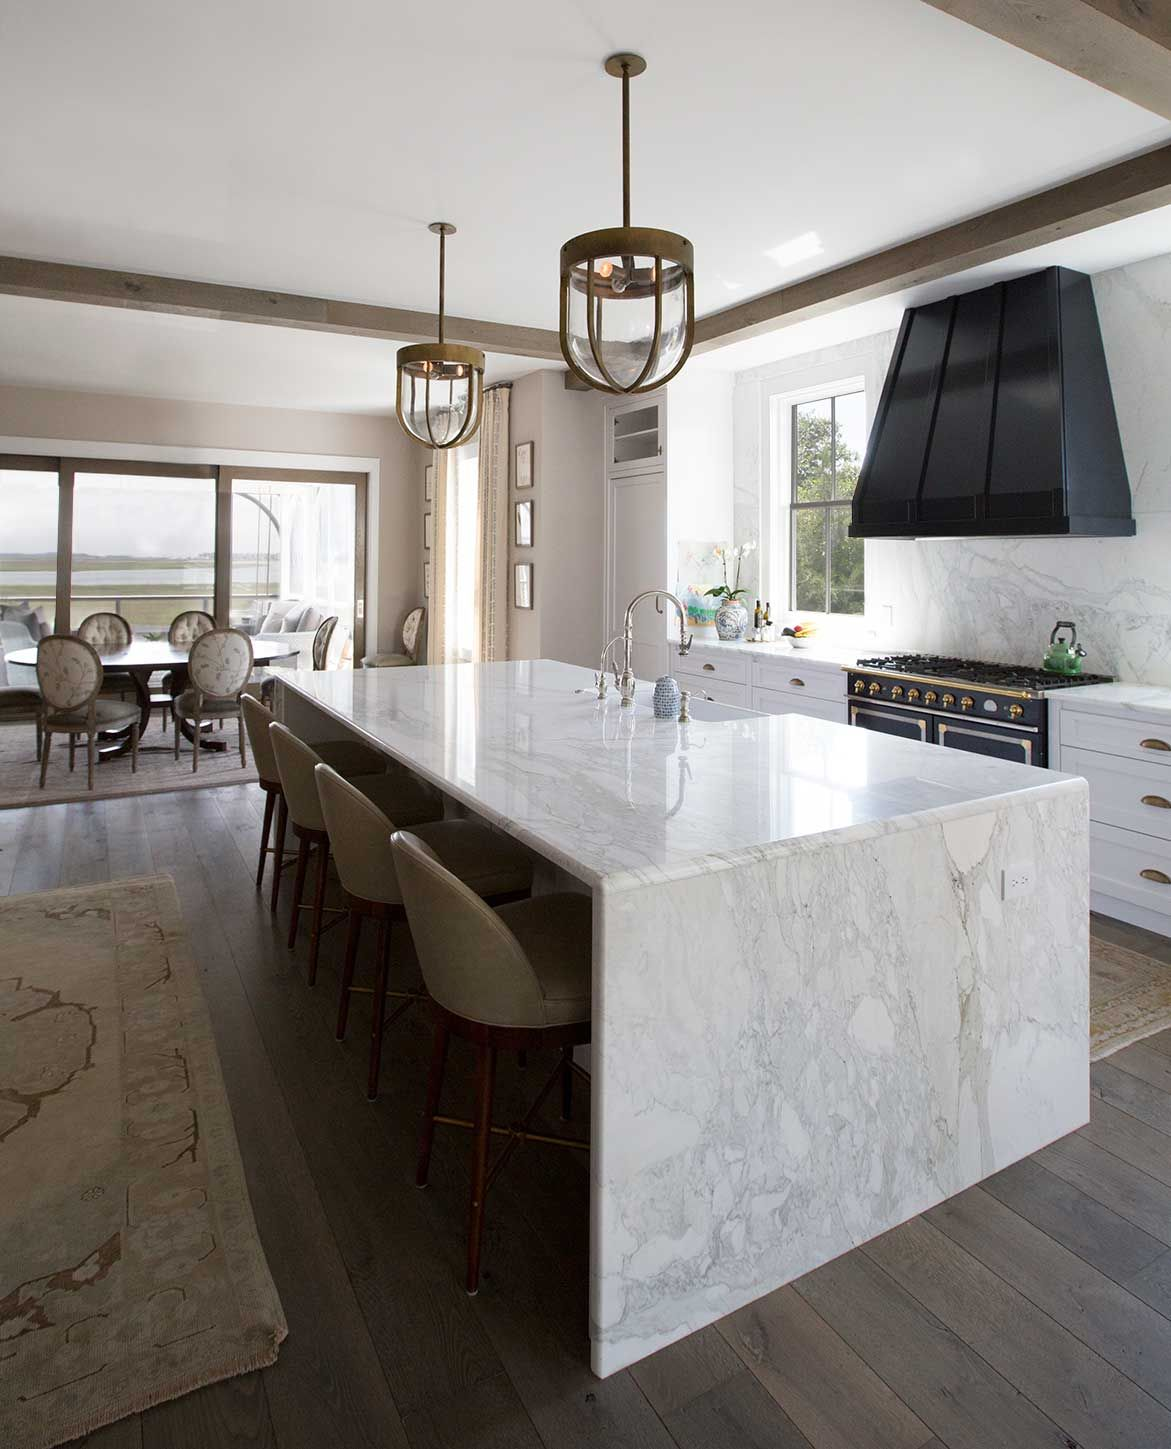 Marble Slab Island With Seating And Built In Sink Waterfall Countertop Kitchen Island Design Waterfall Island Kitchen